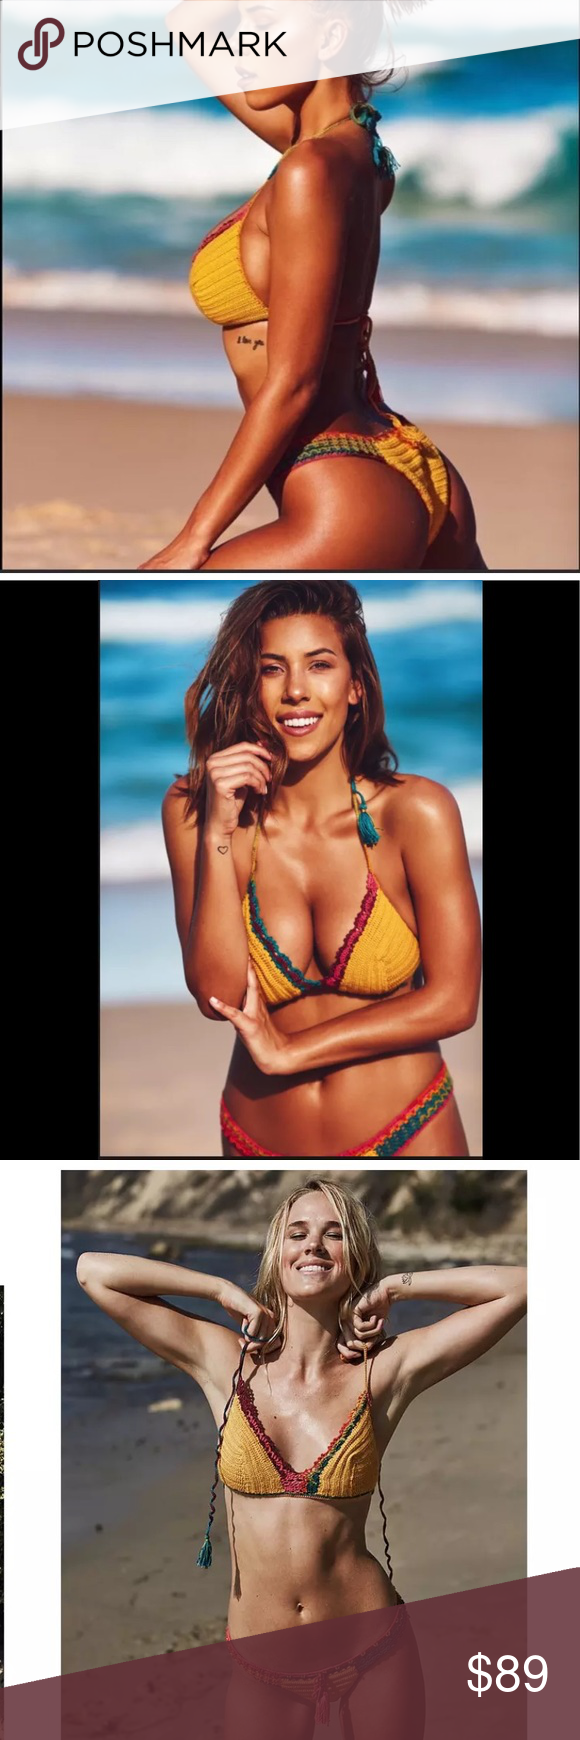 $180 NWT Amore & Sovrete Crochet Bikini Set L 100% authentic new with tagsAmore & Sovrete Crochet Bikini Set. Unique and elegant handcrafted piece! You will get tons of compliments. Perfect to wear to the beach or to the cruise. Size is L.    Pet less and Smoke Free home! Please feel free to ask me any questions! Amore & Sovrete Swim Bikinis